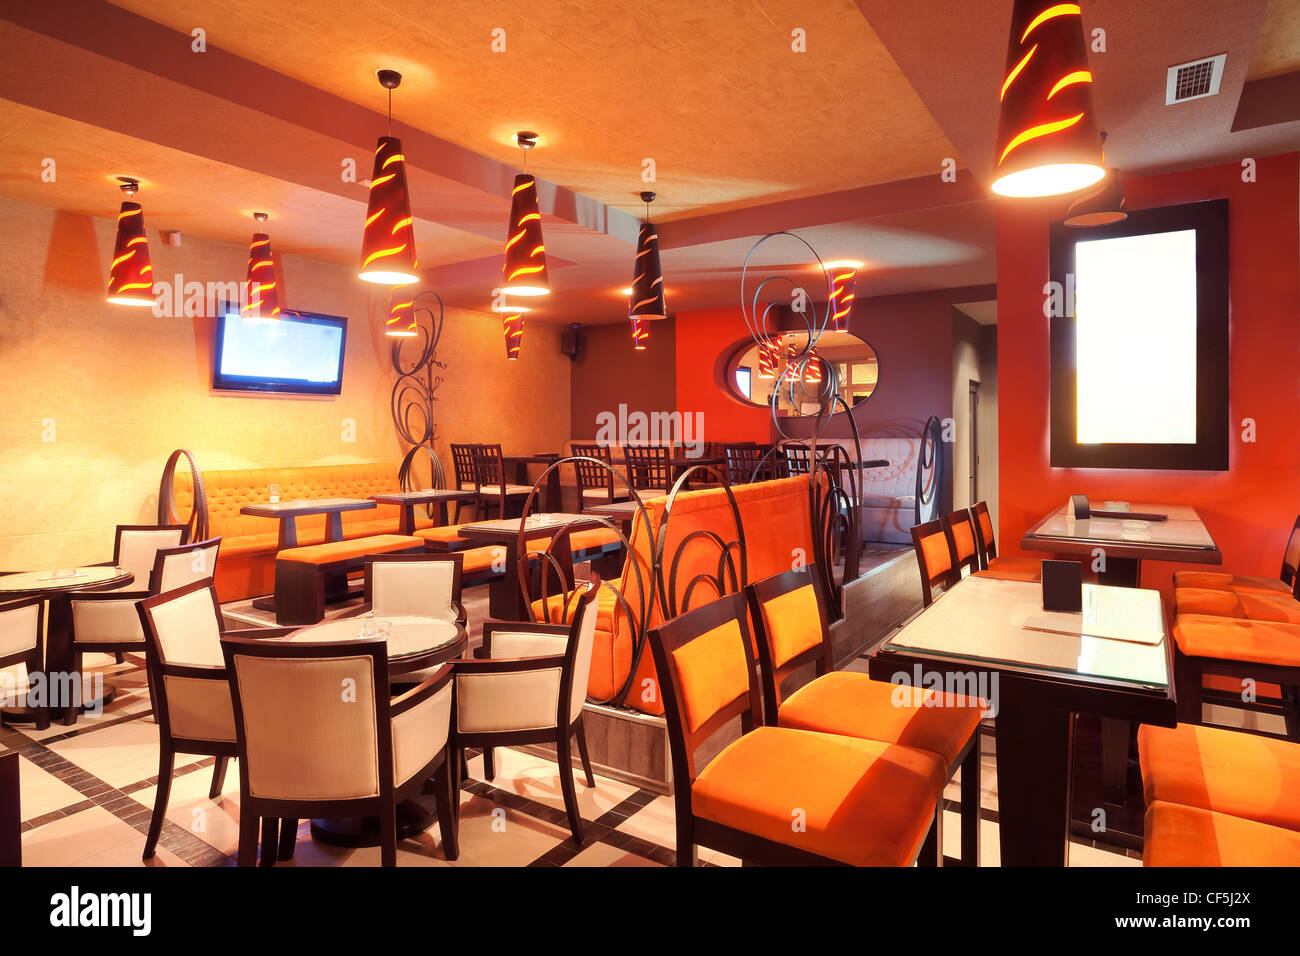 Interior Of A Restaurant Modern Design In Few Colors Orange And Stock Photo Alamy